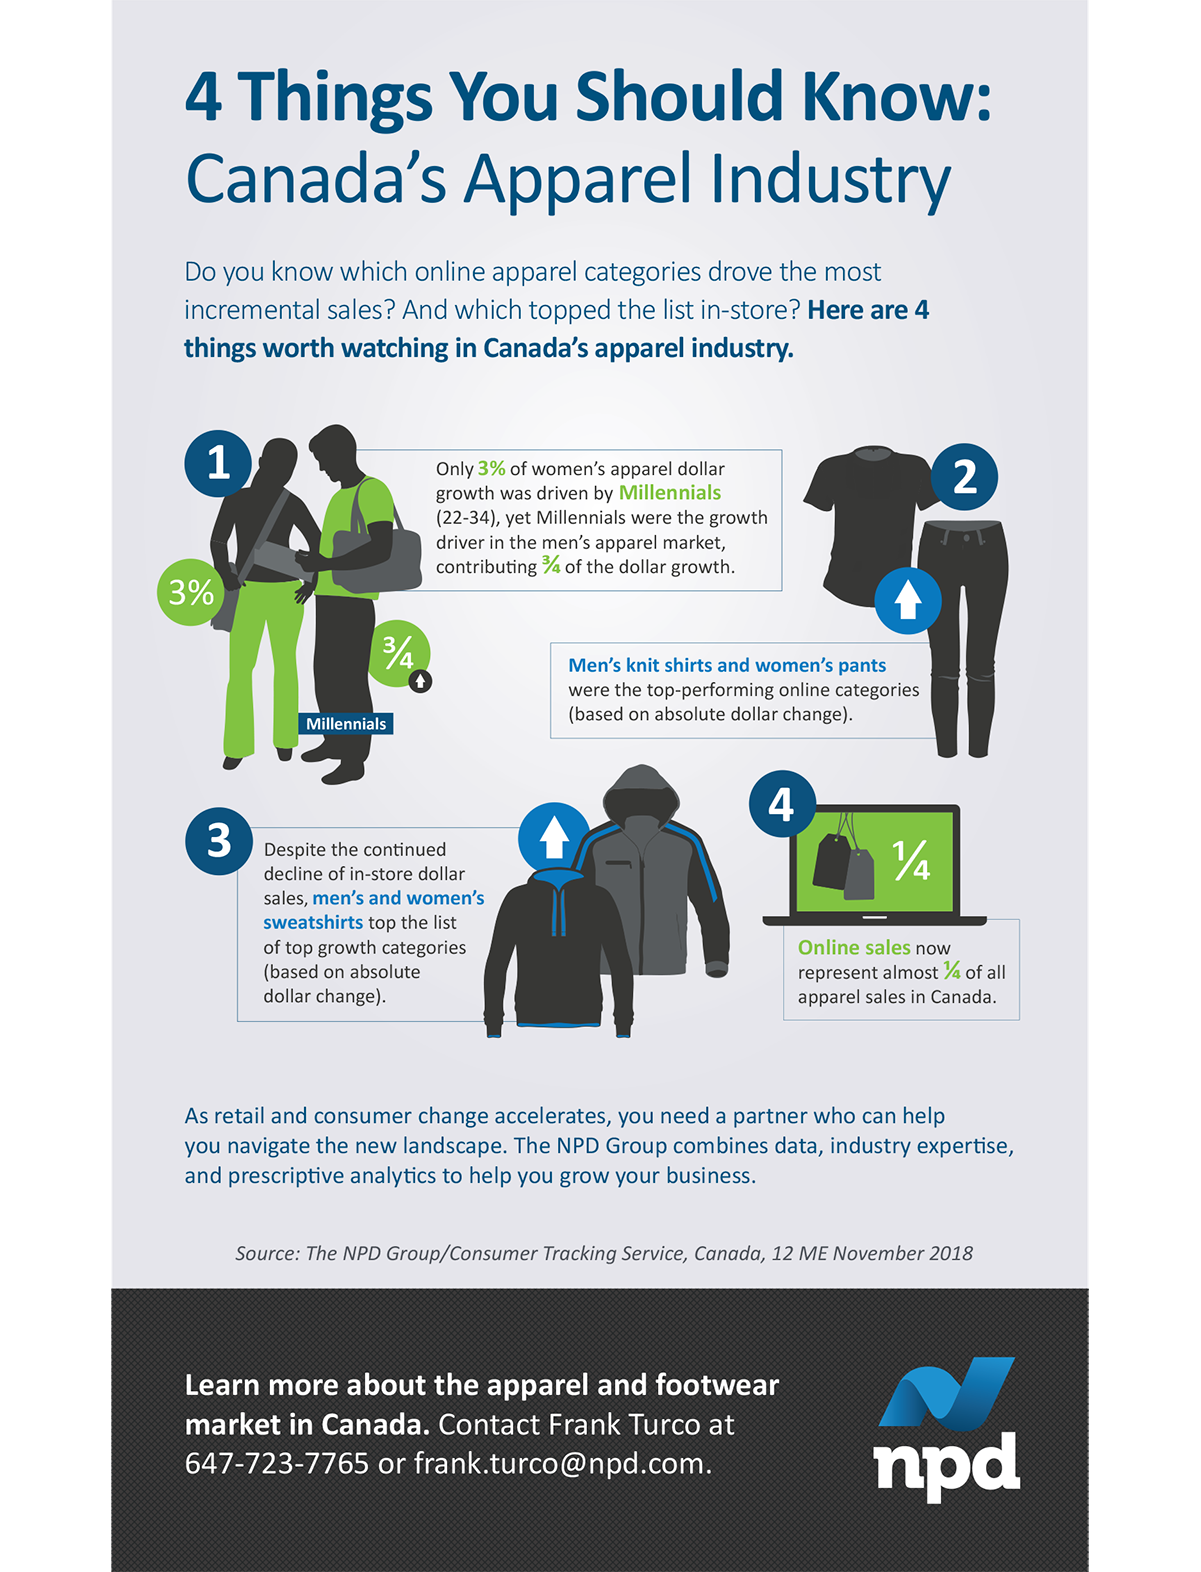 Do you know which online apparel categories drove the most incremental sales? And which topped the list in-store? Here are 4 things worth watching in Canada's apparel industry.